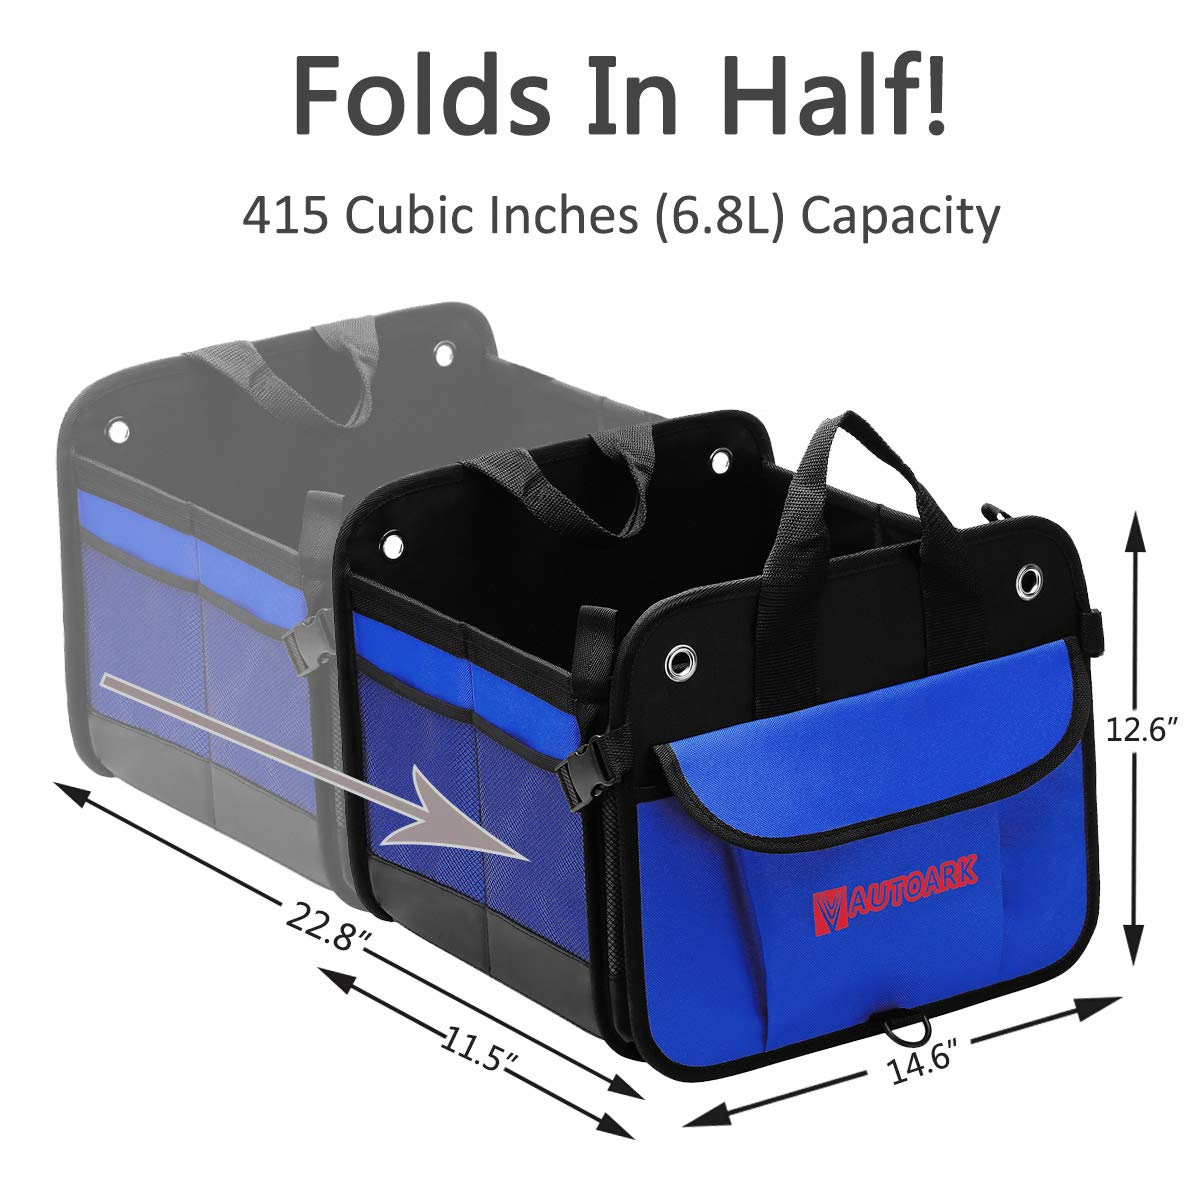 Autoark Multipurpose Car SUV Trunk Organizer,Durable Collapsible Adjustable Compartments Cargo Storage,AK-032